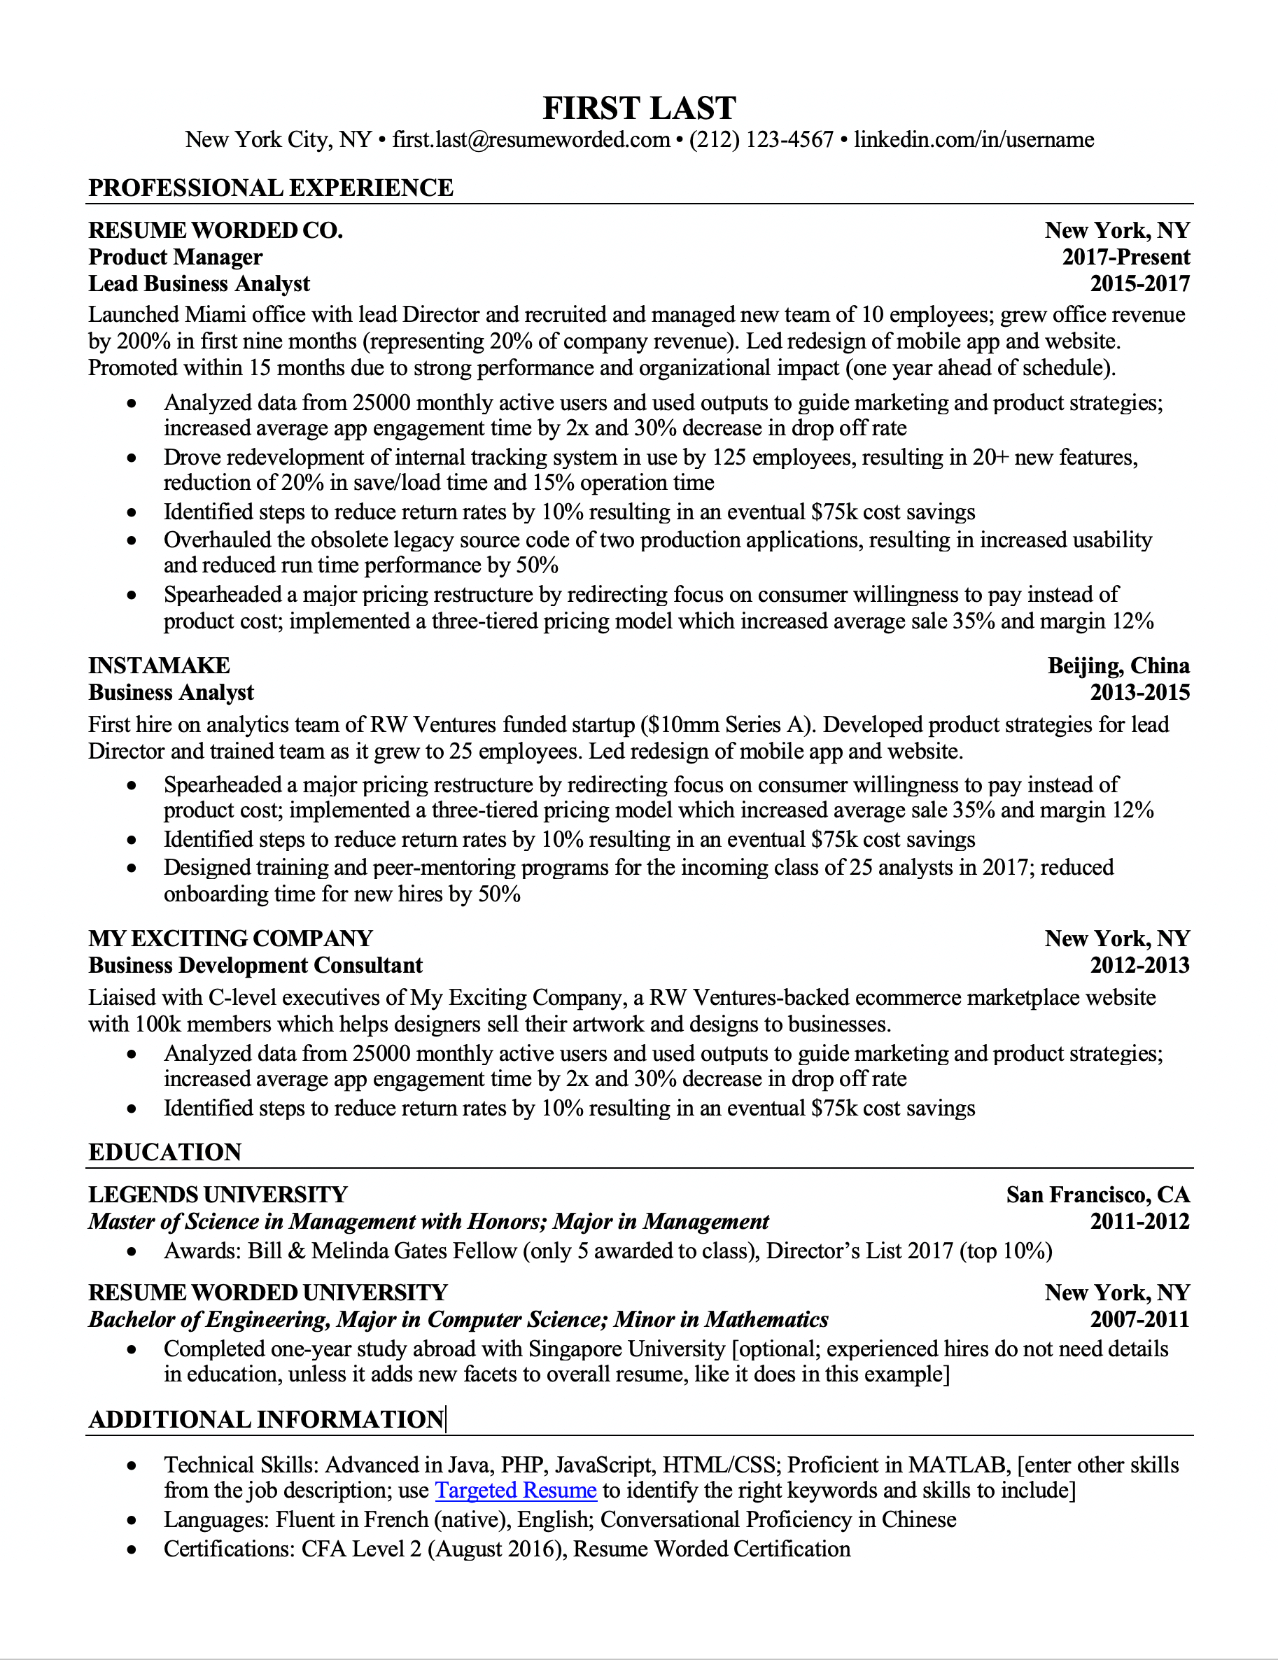 Sample resume template with responsibilities before bullet points